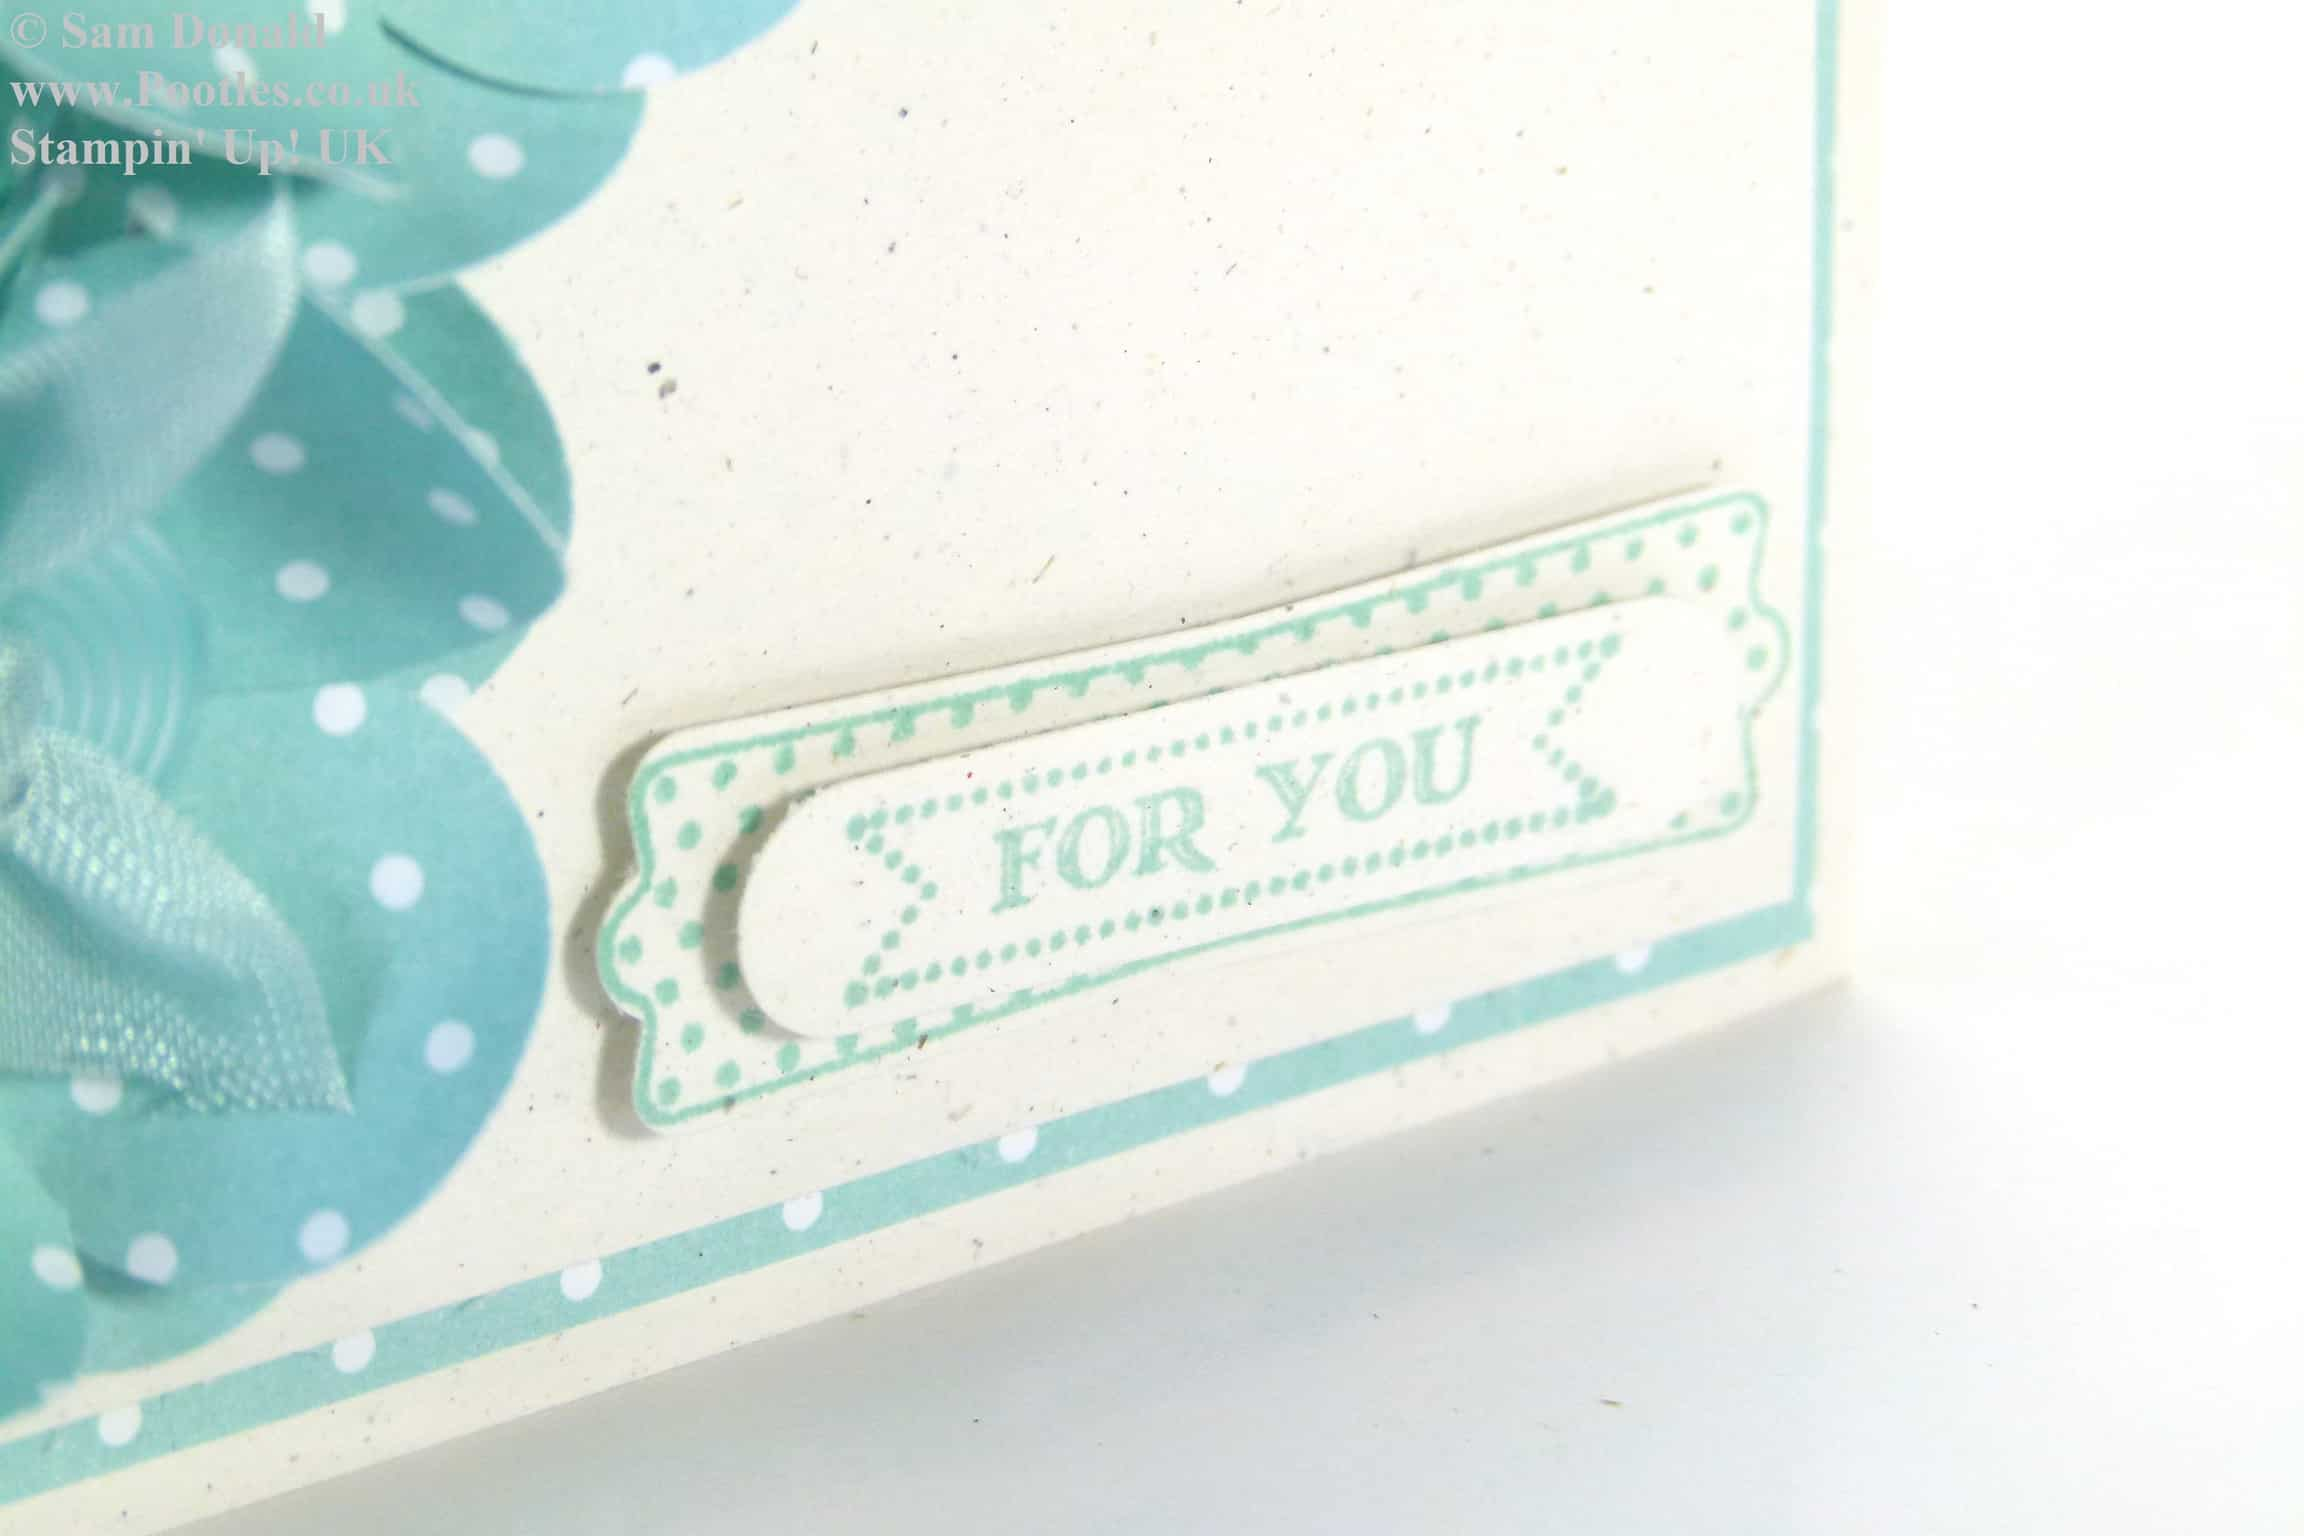 POOTLES Stampin' Up! UK Pool Party Flowers For You